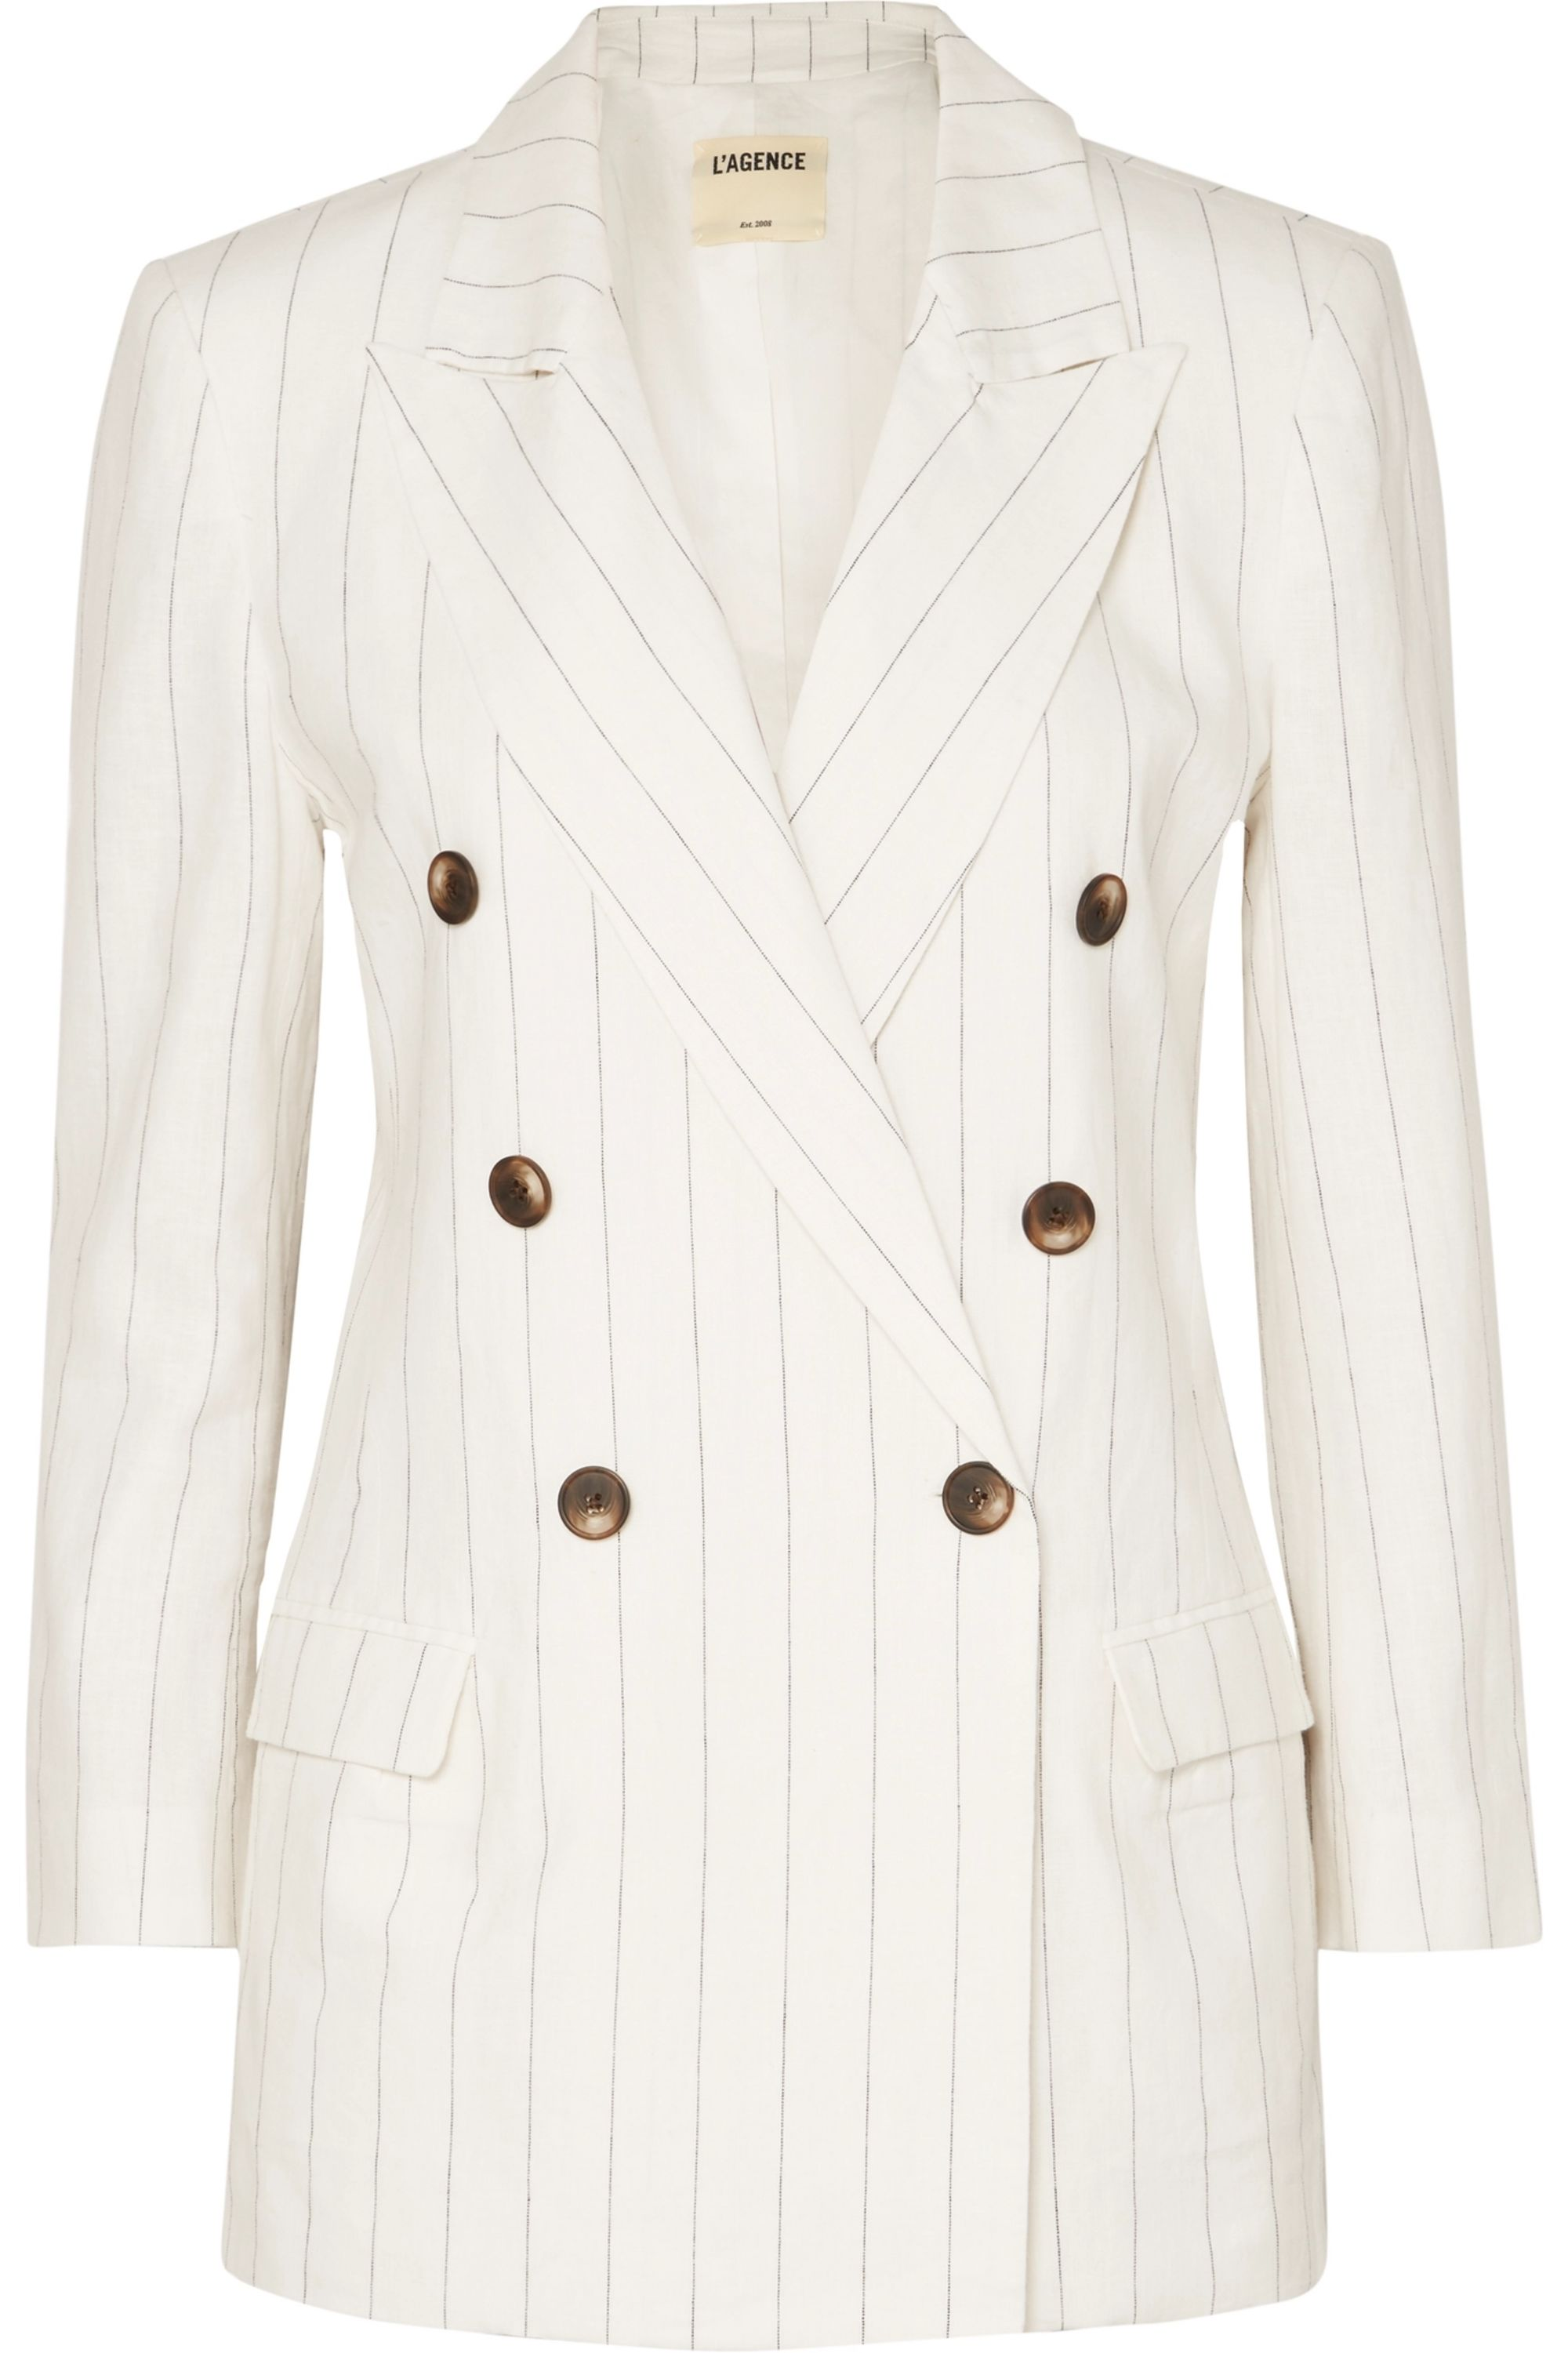 L'Agence Brea pinstriped linen and cotton-blend blazer